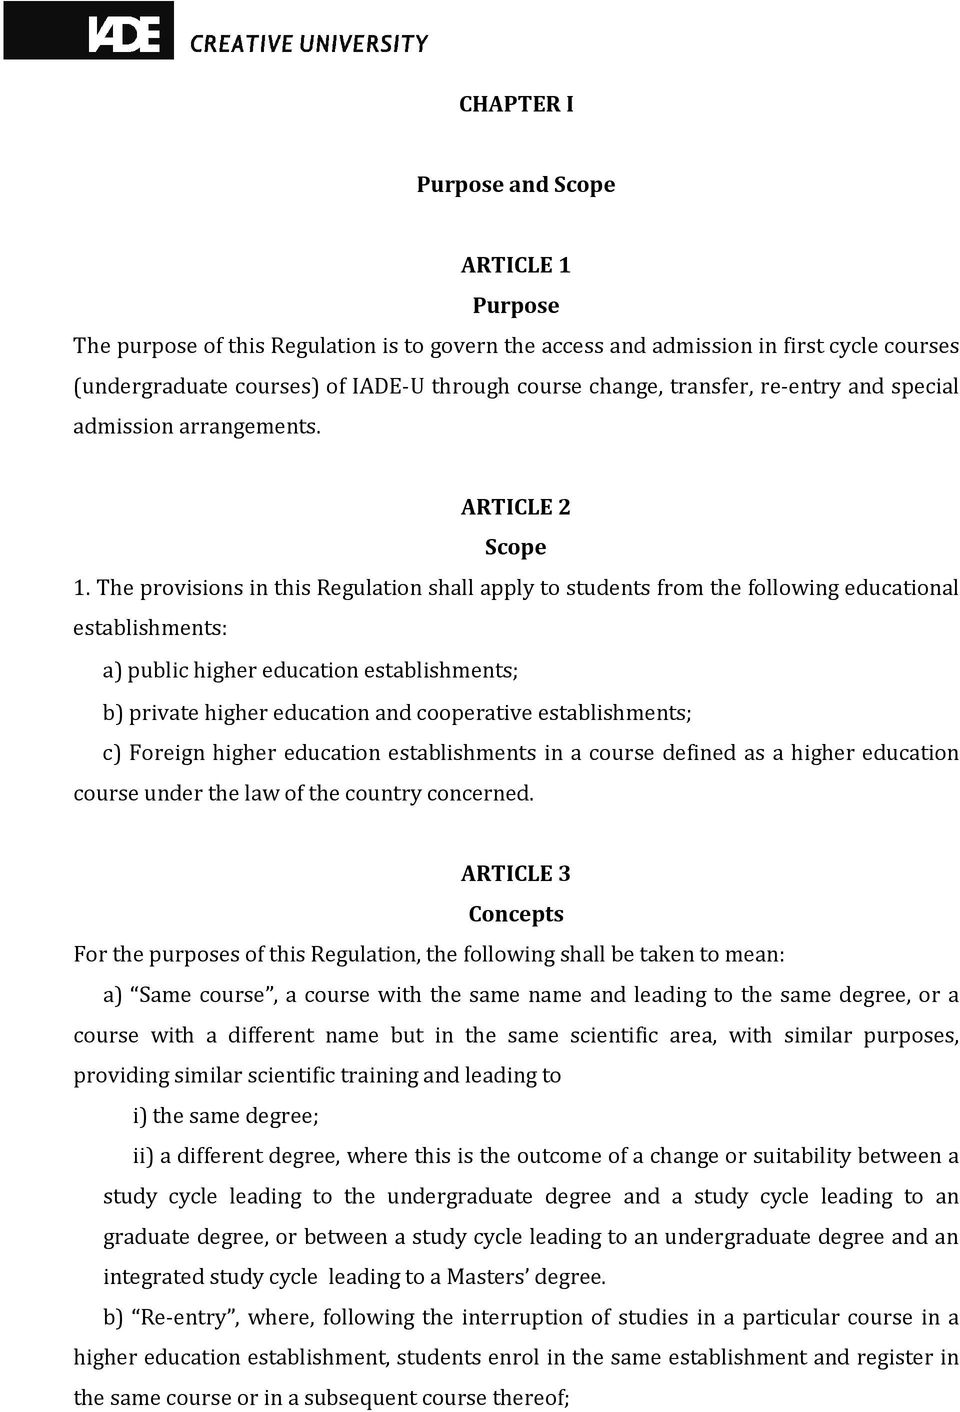 The provisions in this Regulation shall apply to students from the following educational establishments: a) public higher education establishments; b) private higher education and cooperative